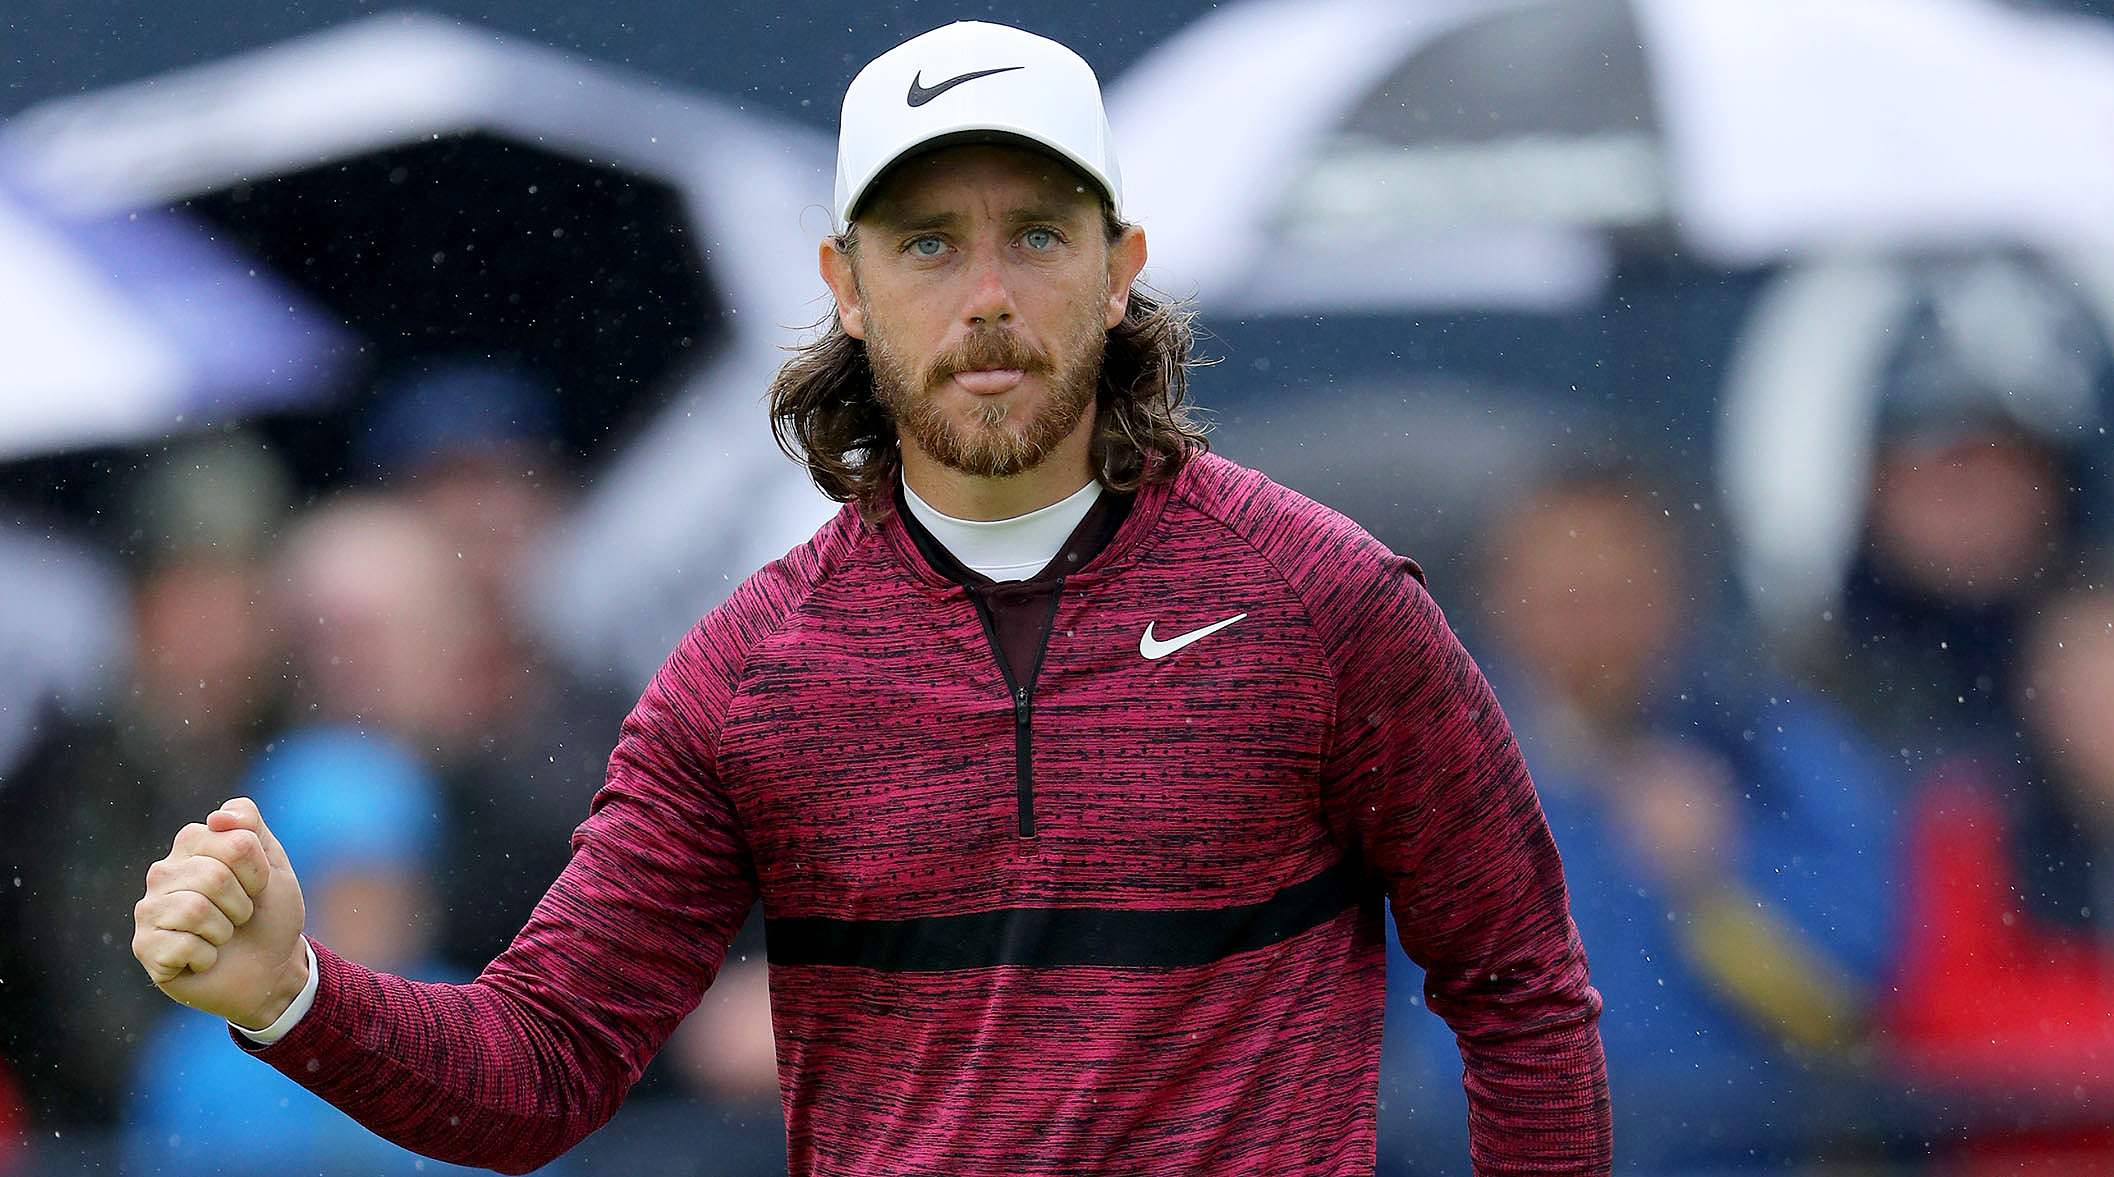 147th Open Championship - Day Two